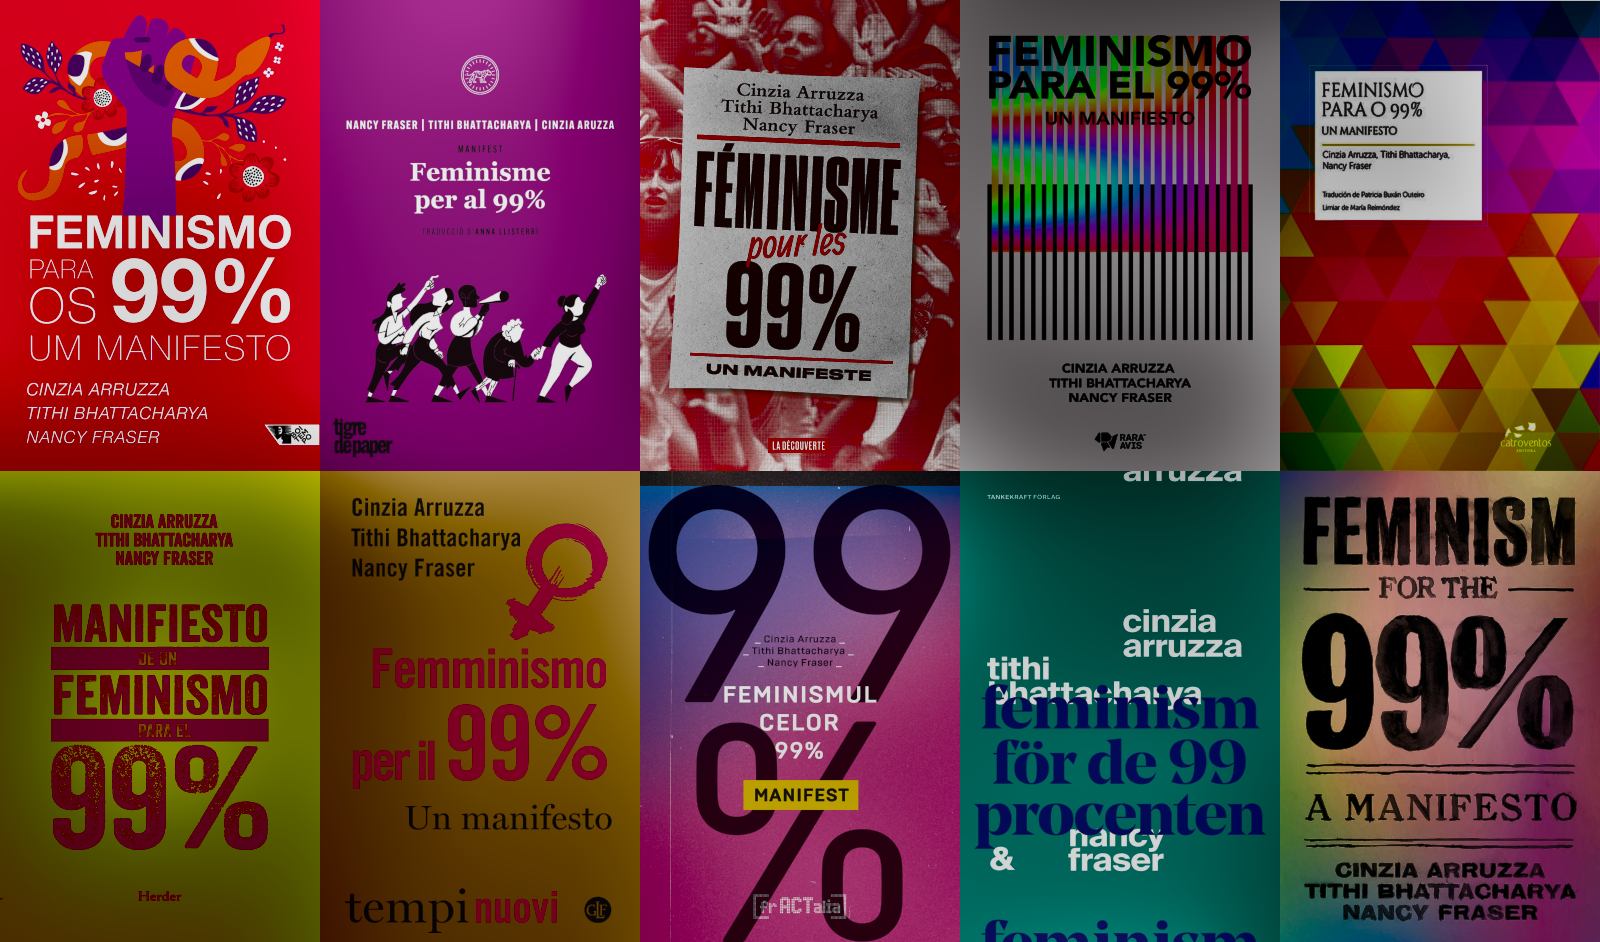 Feminism for the 99%? Social reproduction and the socialist revolution